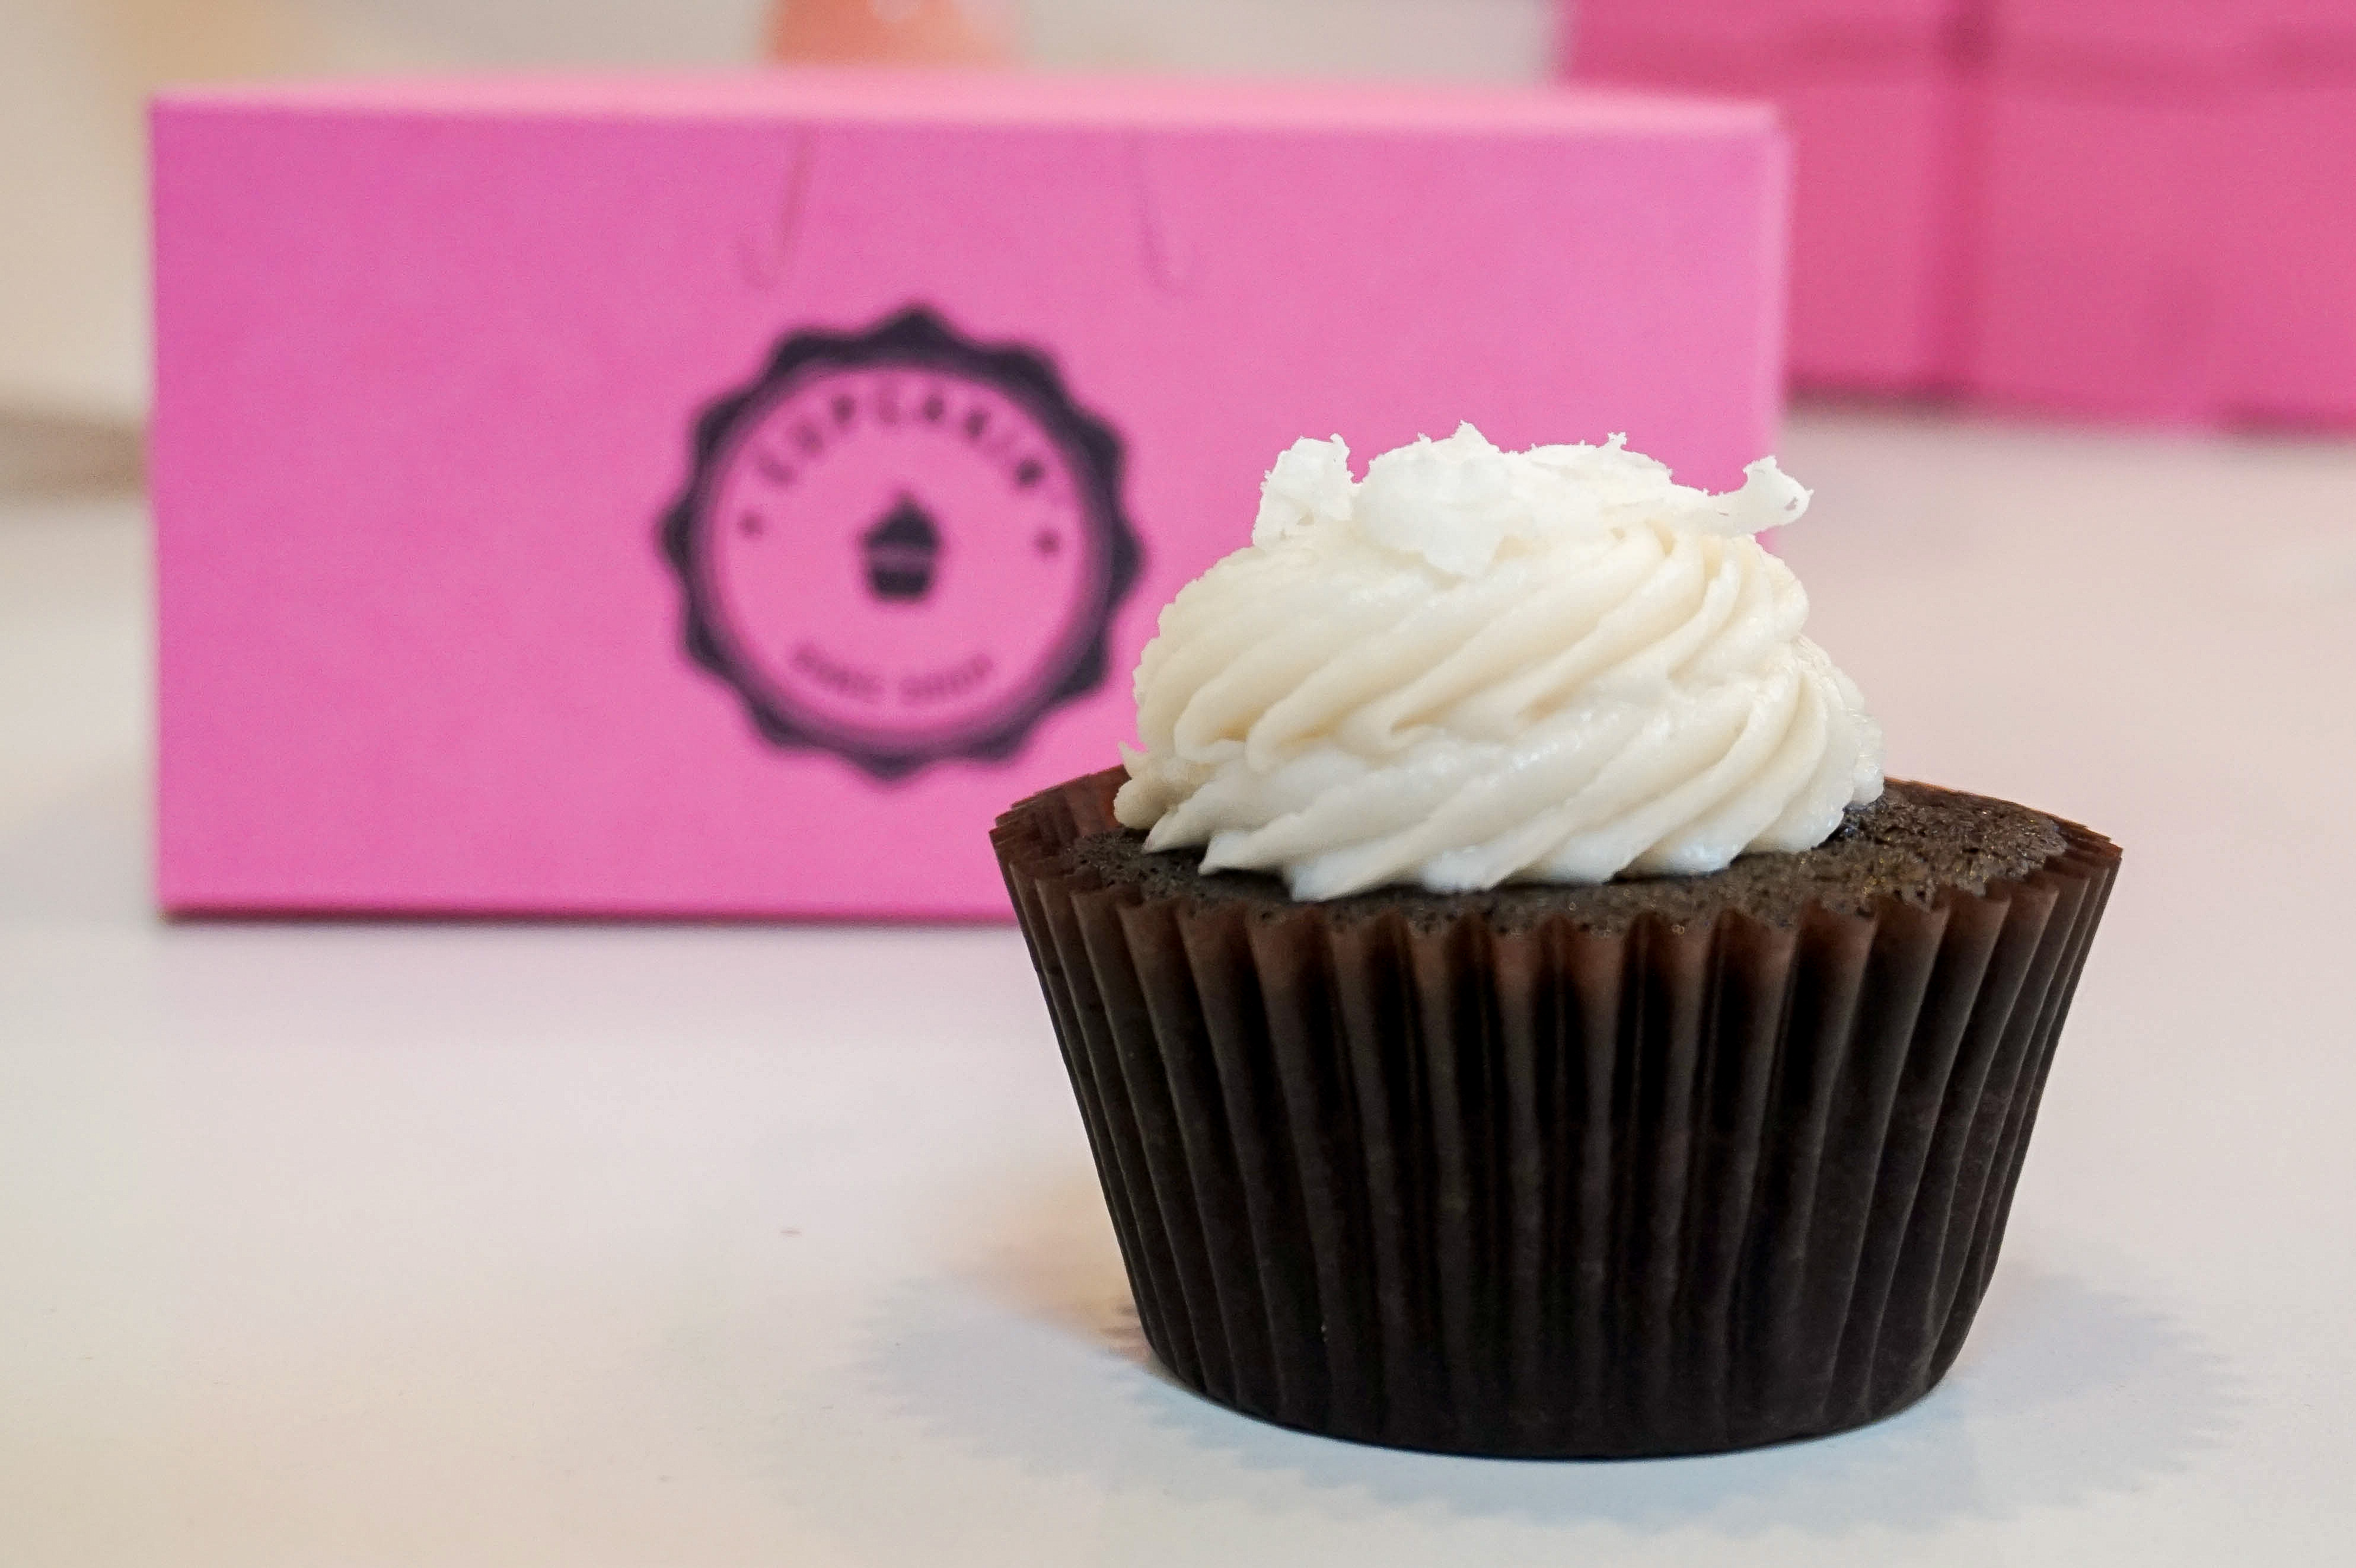 You are a Vegan Coconut Cupcake!